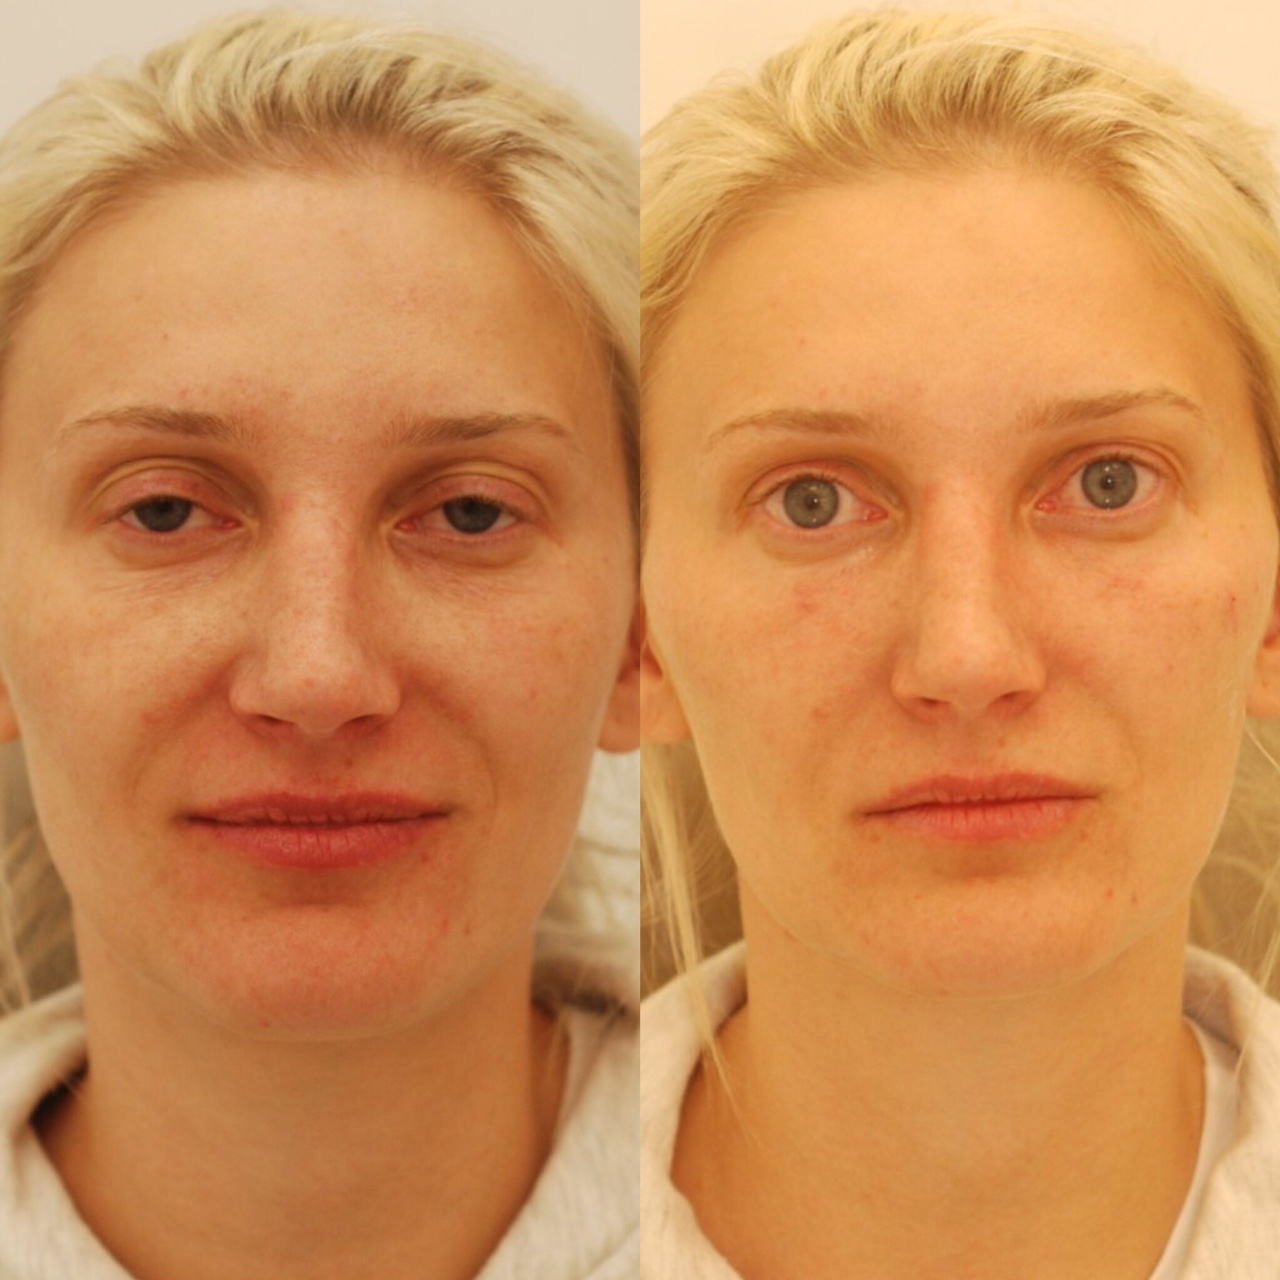 Actual patient of Dr. Devgan, before and after under-eye augmentation